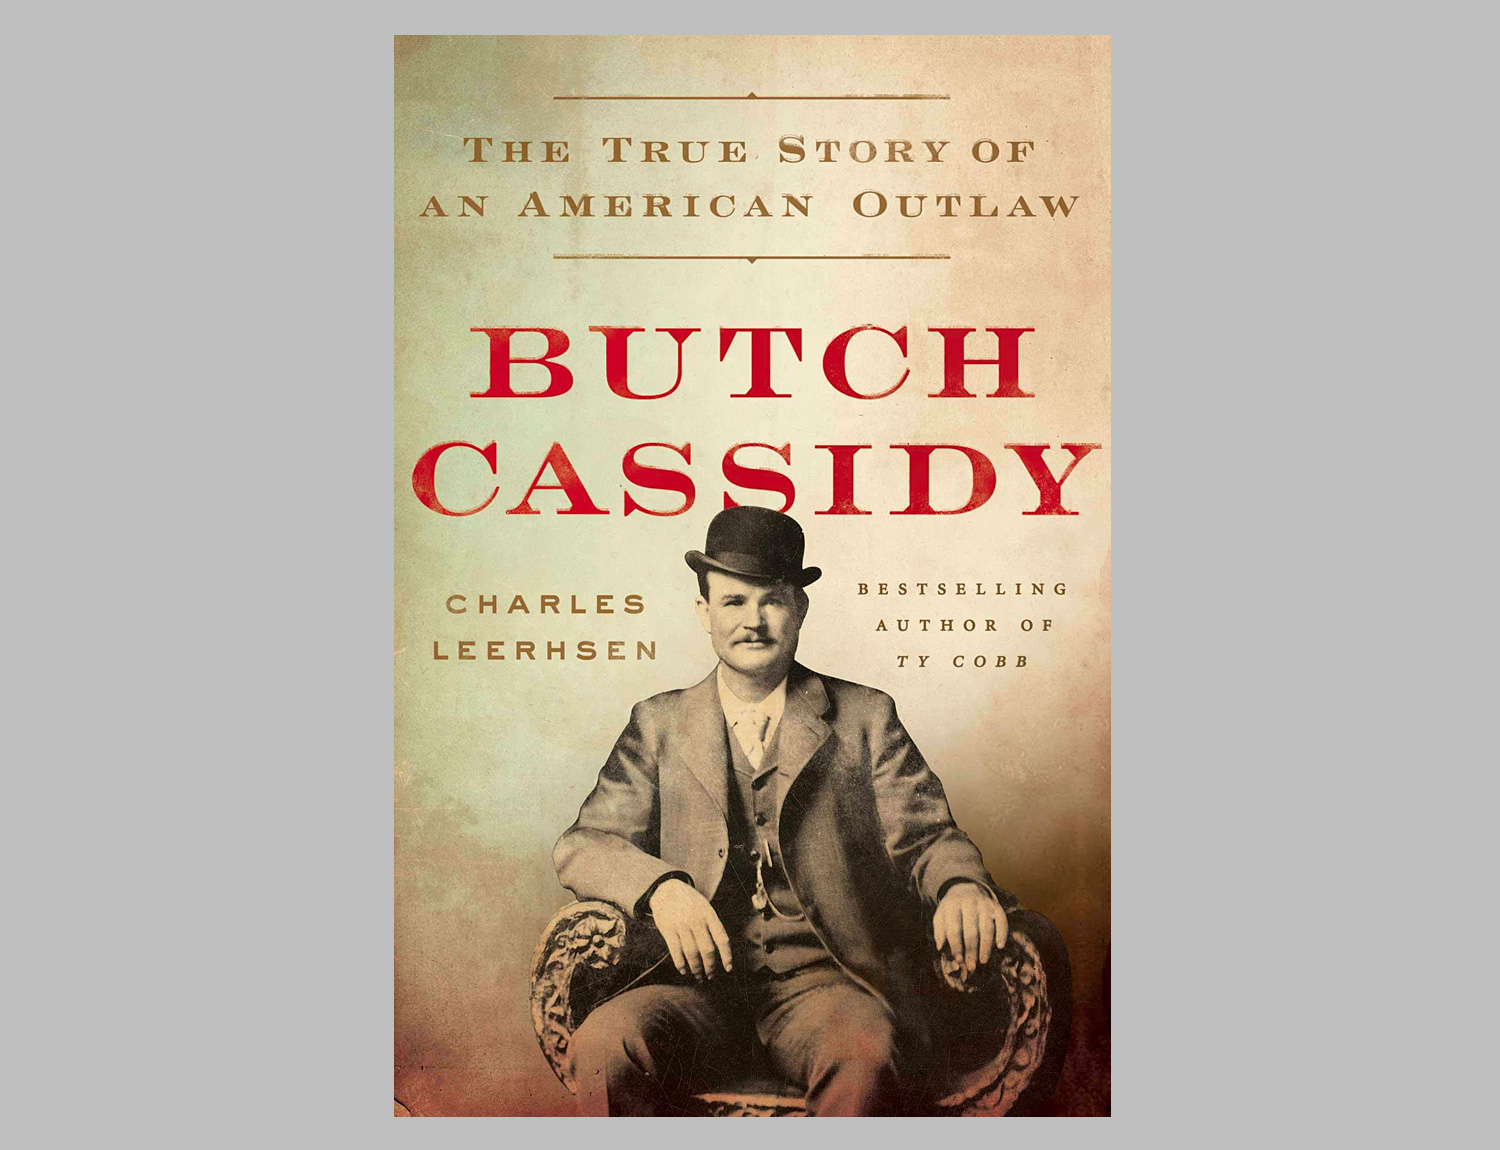 Butch Cassidy: The True Story of an American Outlaw at werd.com